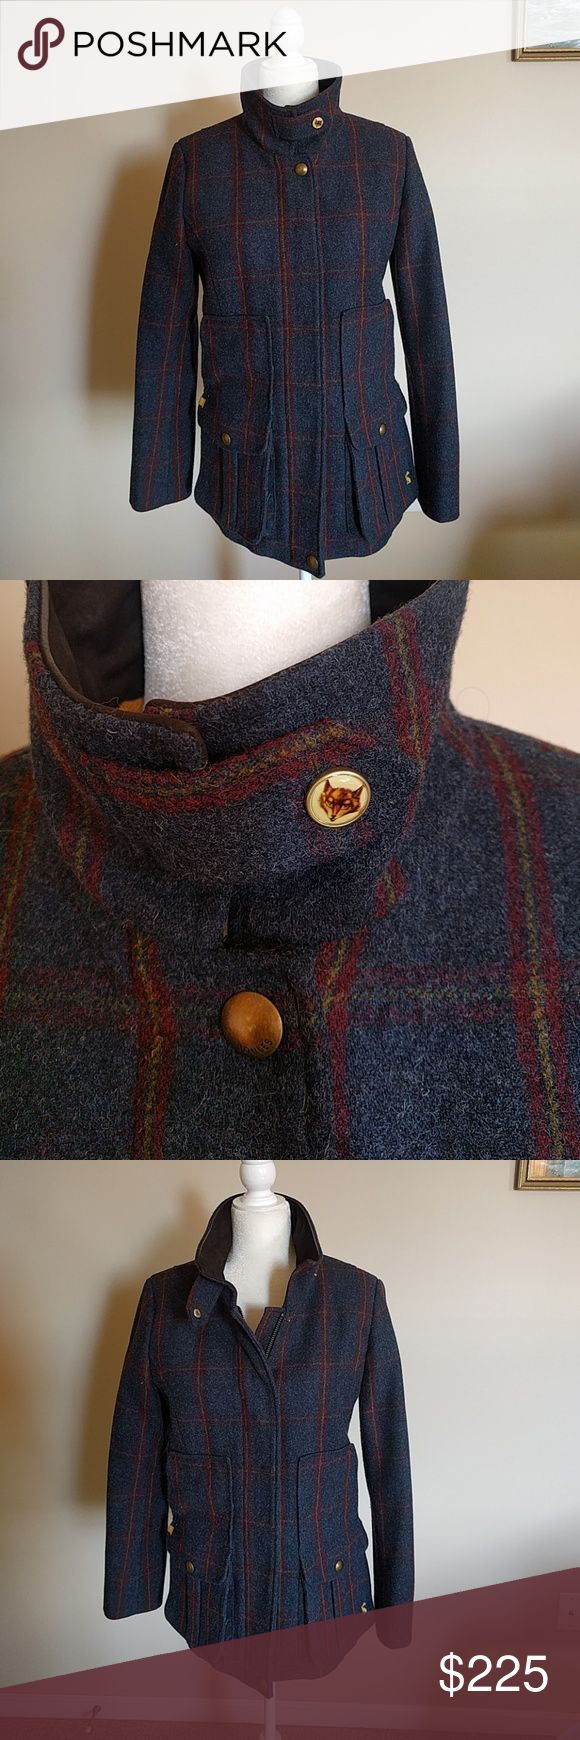 Joules Blue Tweed Field Coat 10 **NO OFFERS** Gorgeous blue tweed field coat.  Joules.   Size 10.  Immaculate condition. Only selling as too big and I want to get a size smaller.  Smoke and pet free home. Joules Jackets & Coats